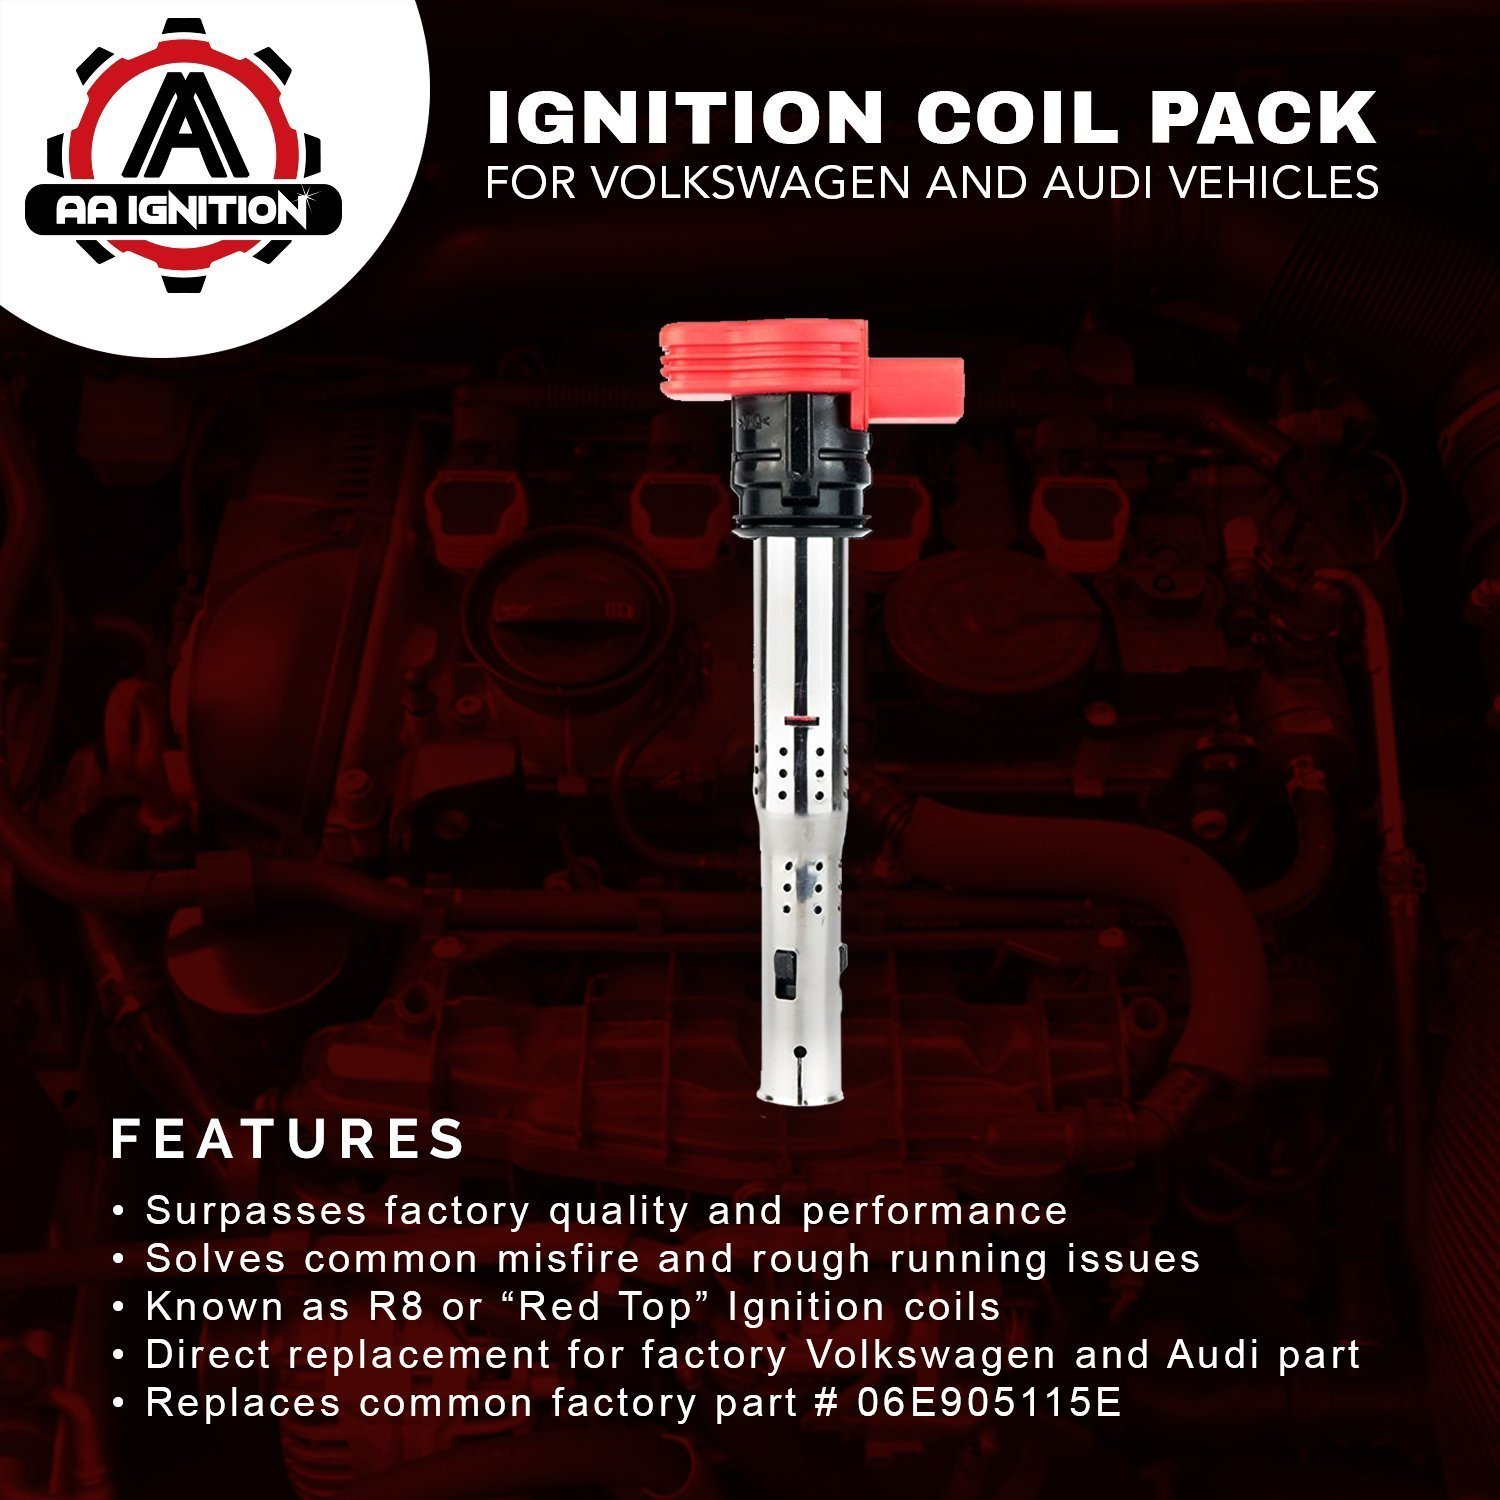 Ignition Coil Pack Replaces 06e905115e Fits 2006 Vw Gti Wiring Diagram Volkswagen Audi Vehicles Automotive